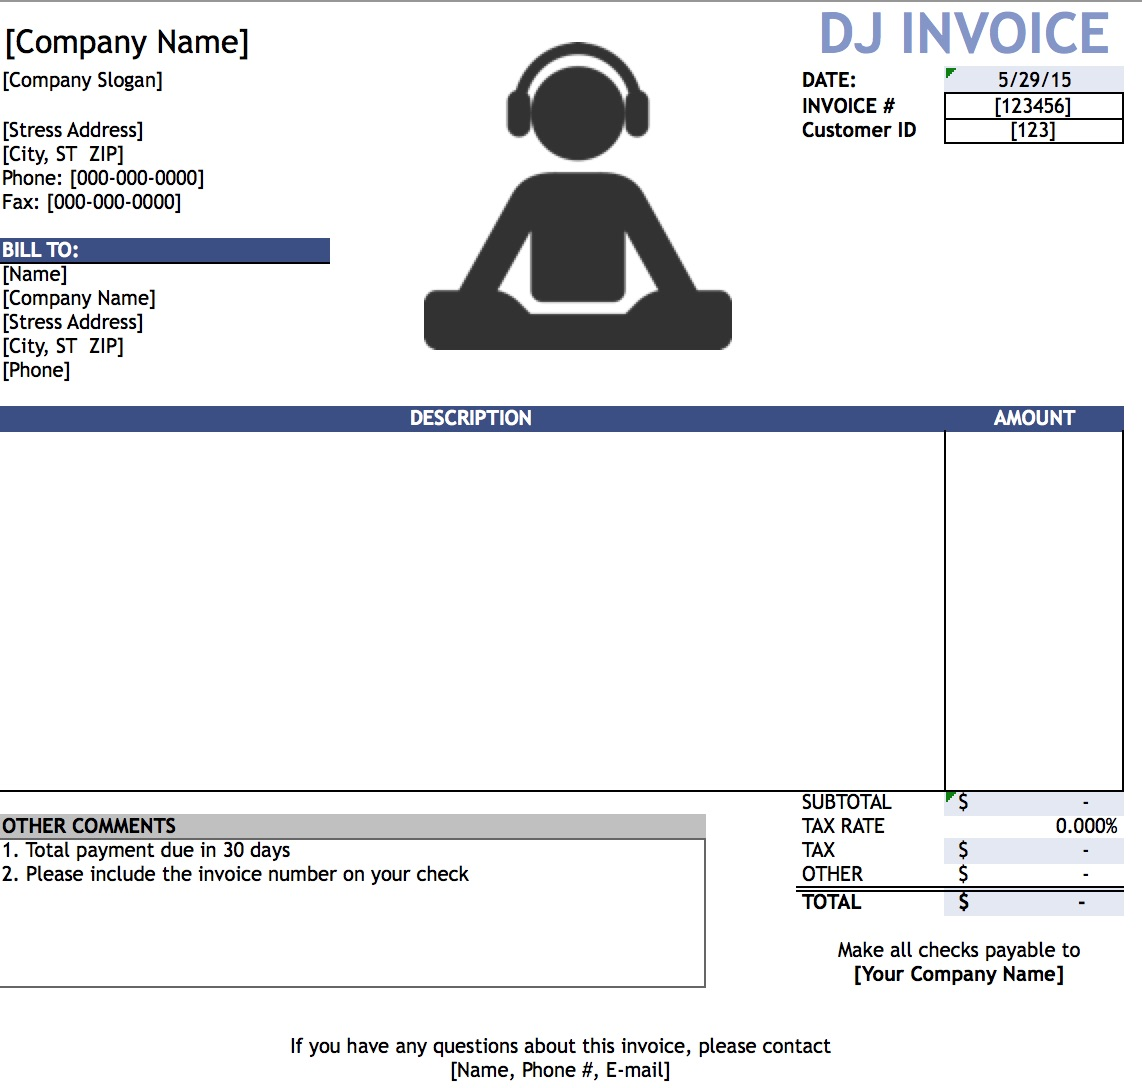 Free DJ Disc Jockey Invoice Template Excel PDF Word Doc - Free invoice forms templates for service business